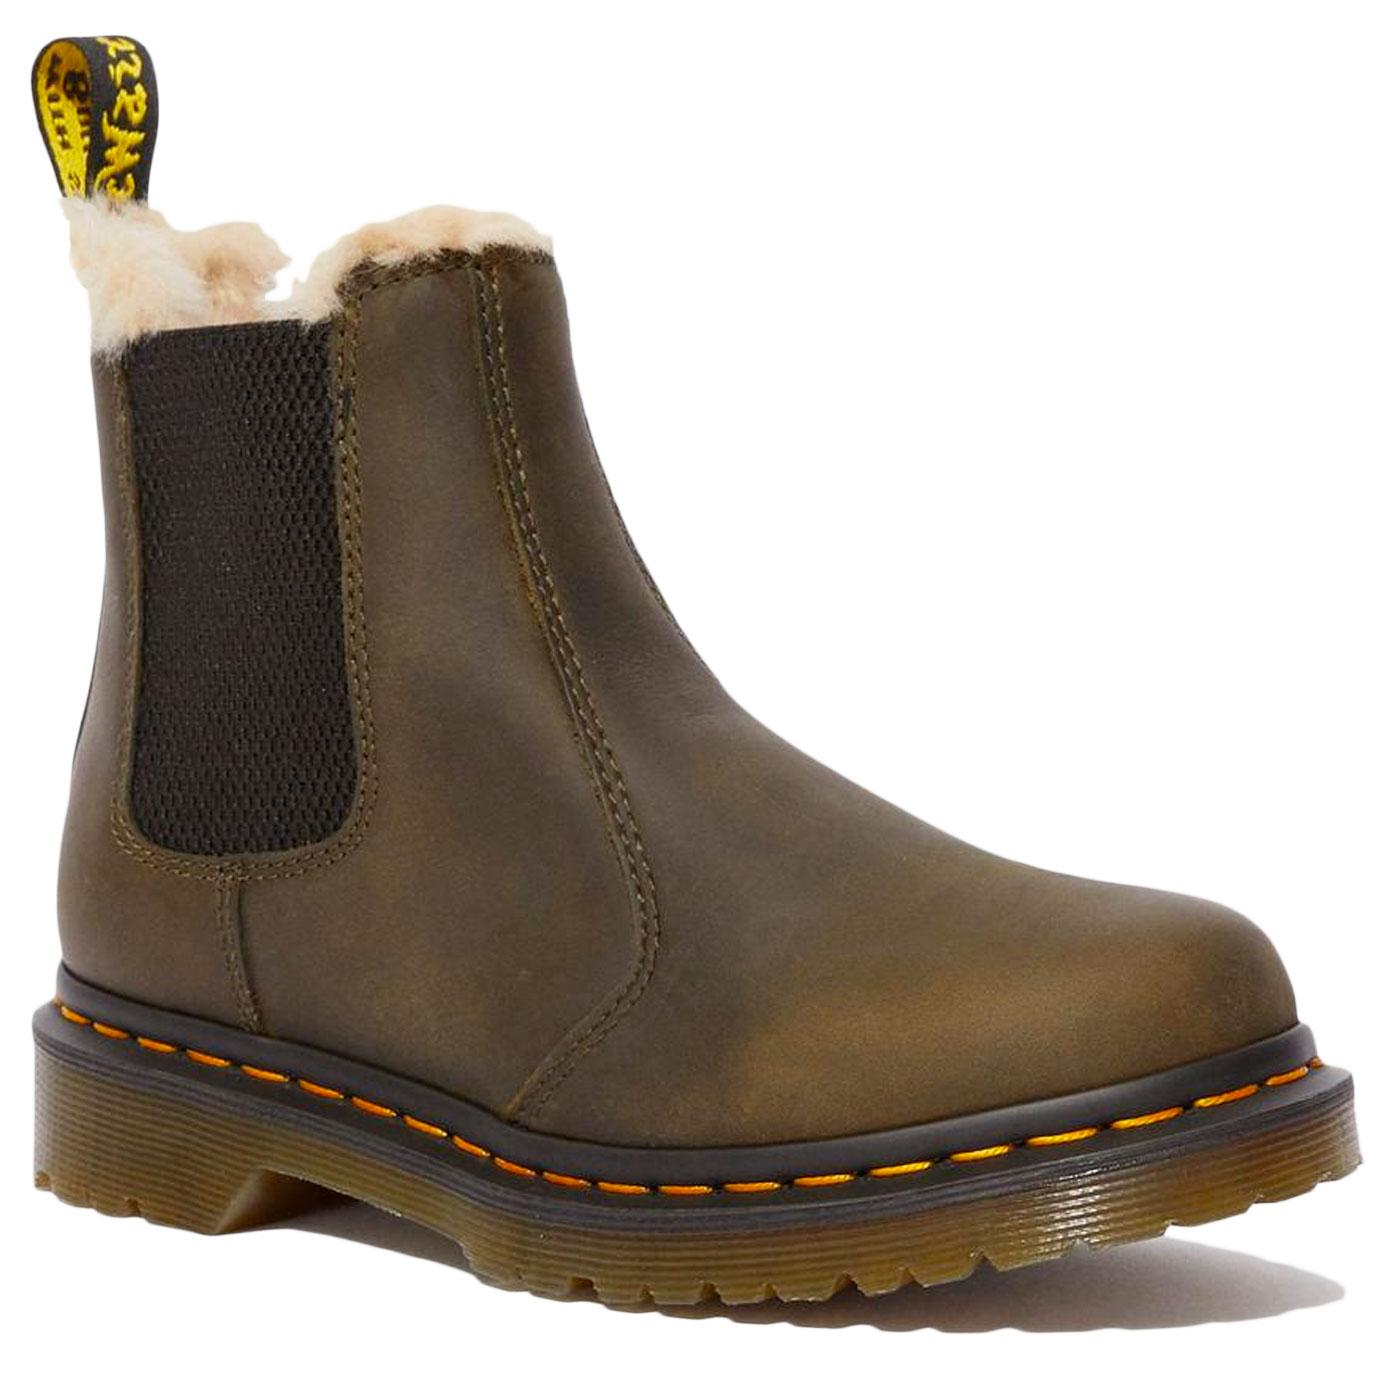 Leonore DR MARTENS Olive Fur Lined Ankle Boots